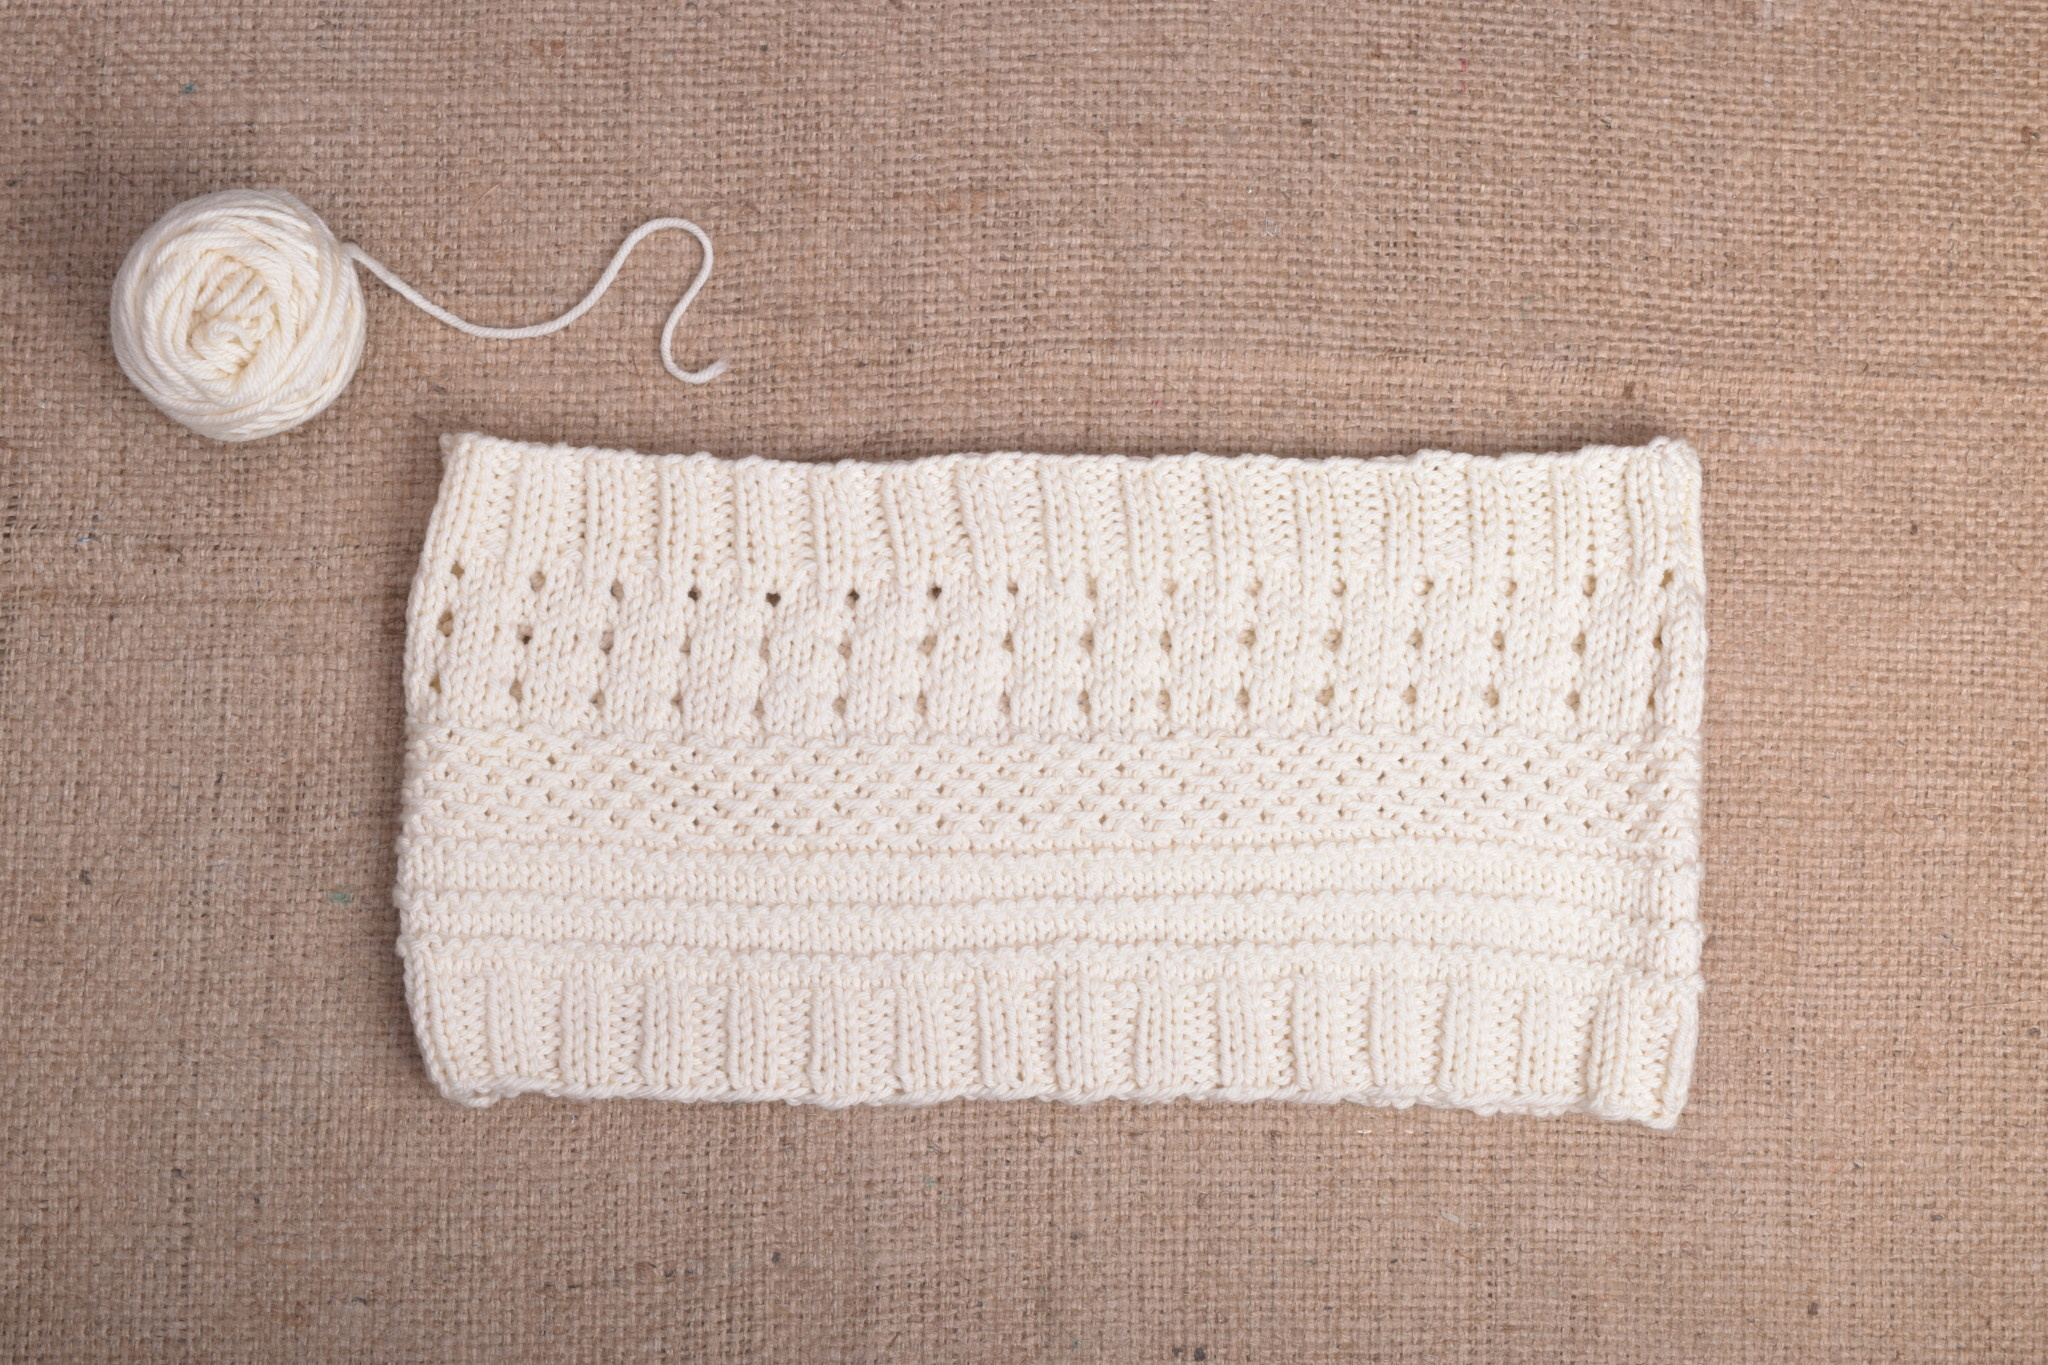 Knitting 101: Learn to Knit; Sunday, June 2, 9, 16, 23;  3:00-5:00PM